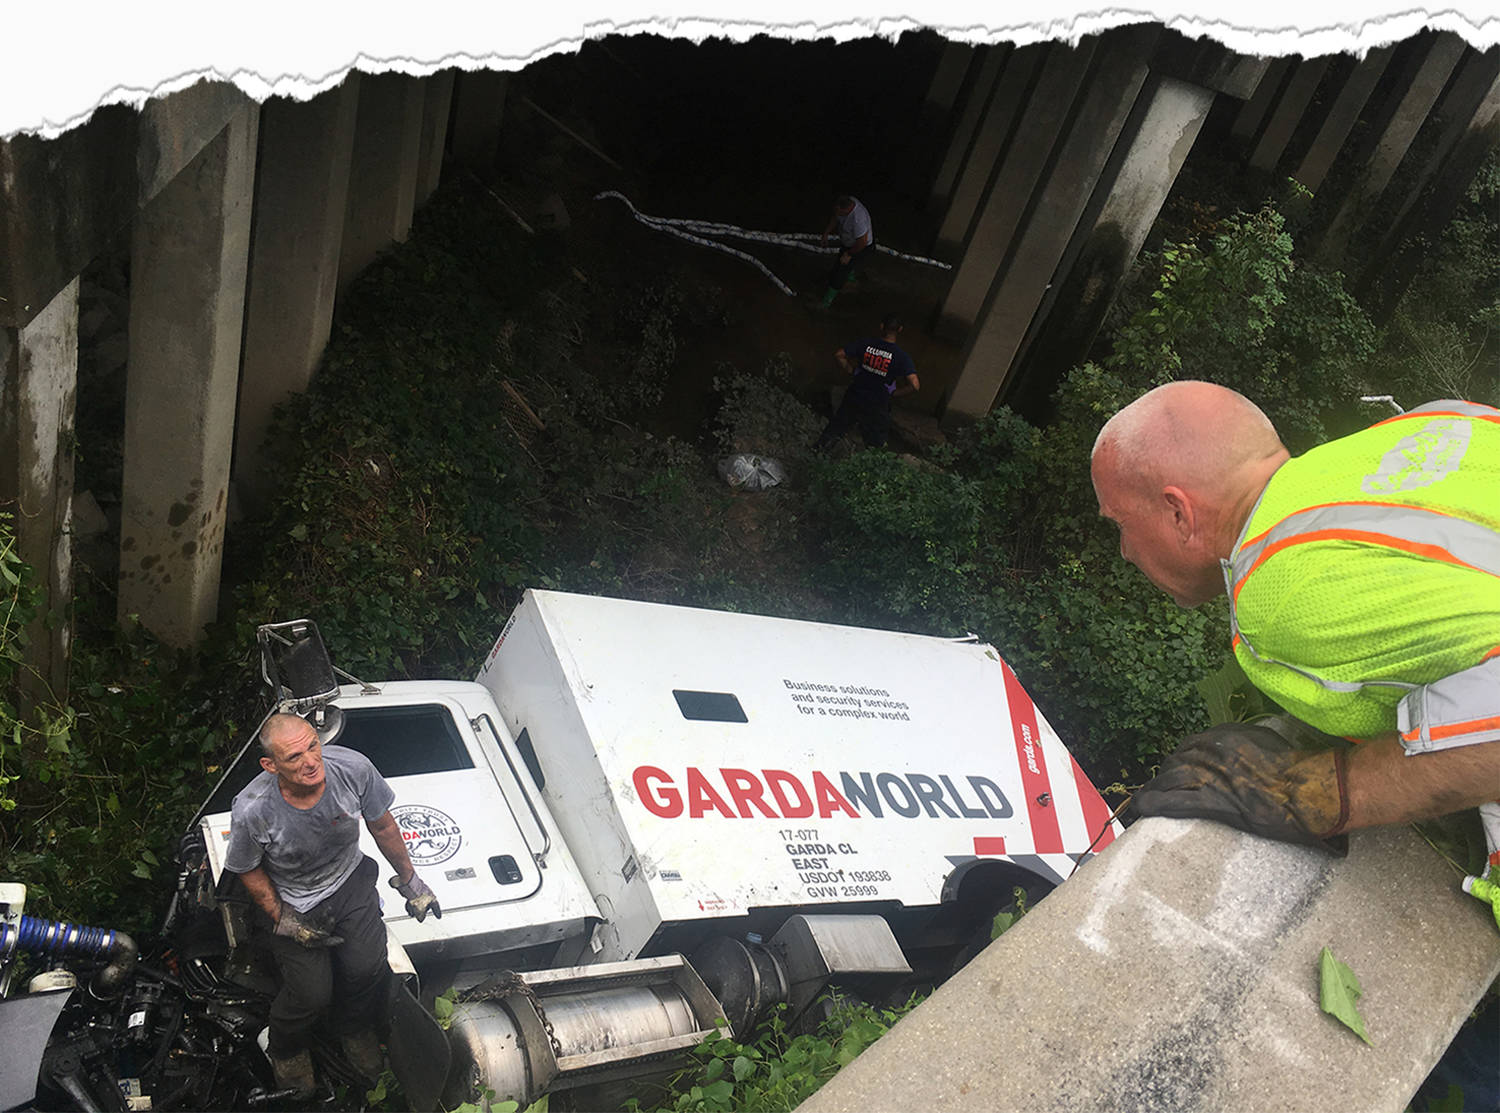 As one worker wearing work gloves and a yellow vest leans over a low concrete barrier, another worker well beneath him stands on an overturned Garda armored truck in the weeds, having apparently driven off the roadway.